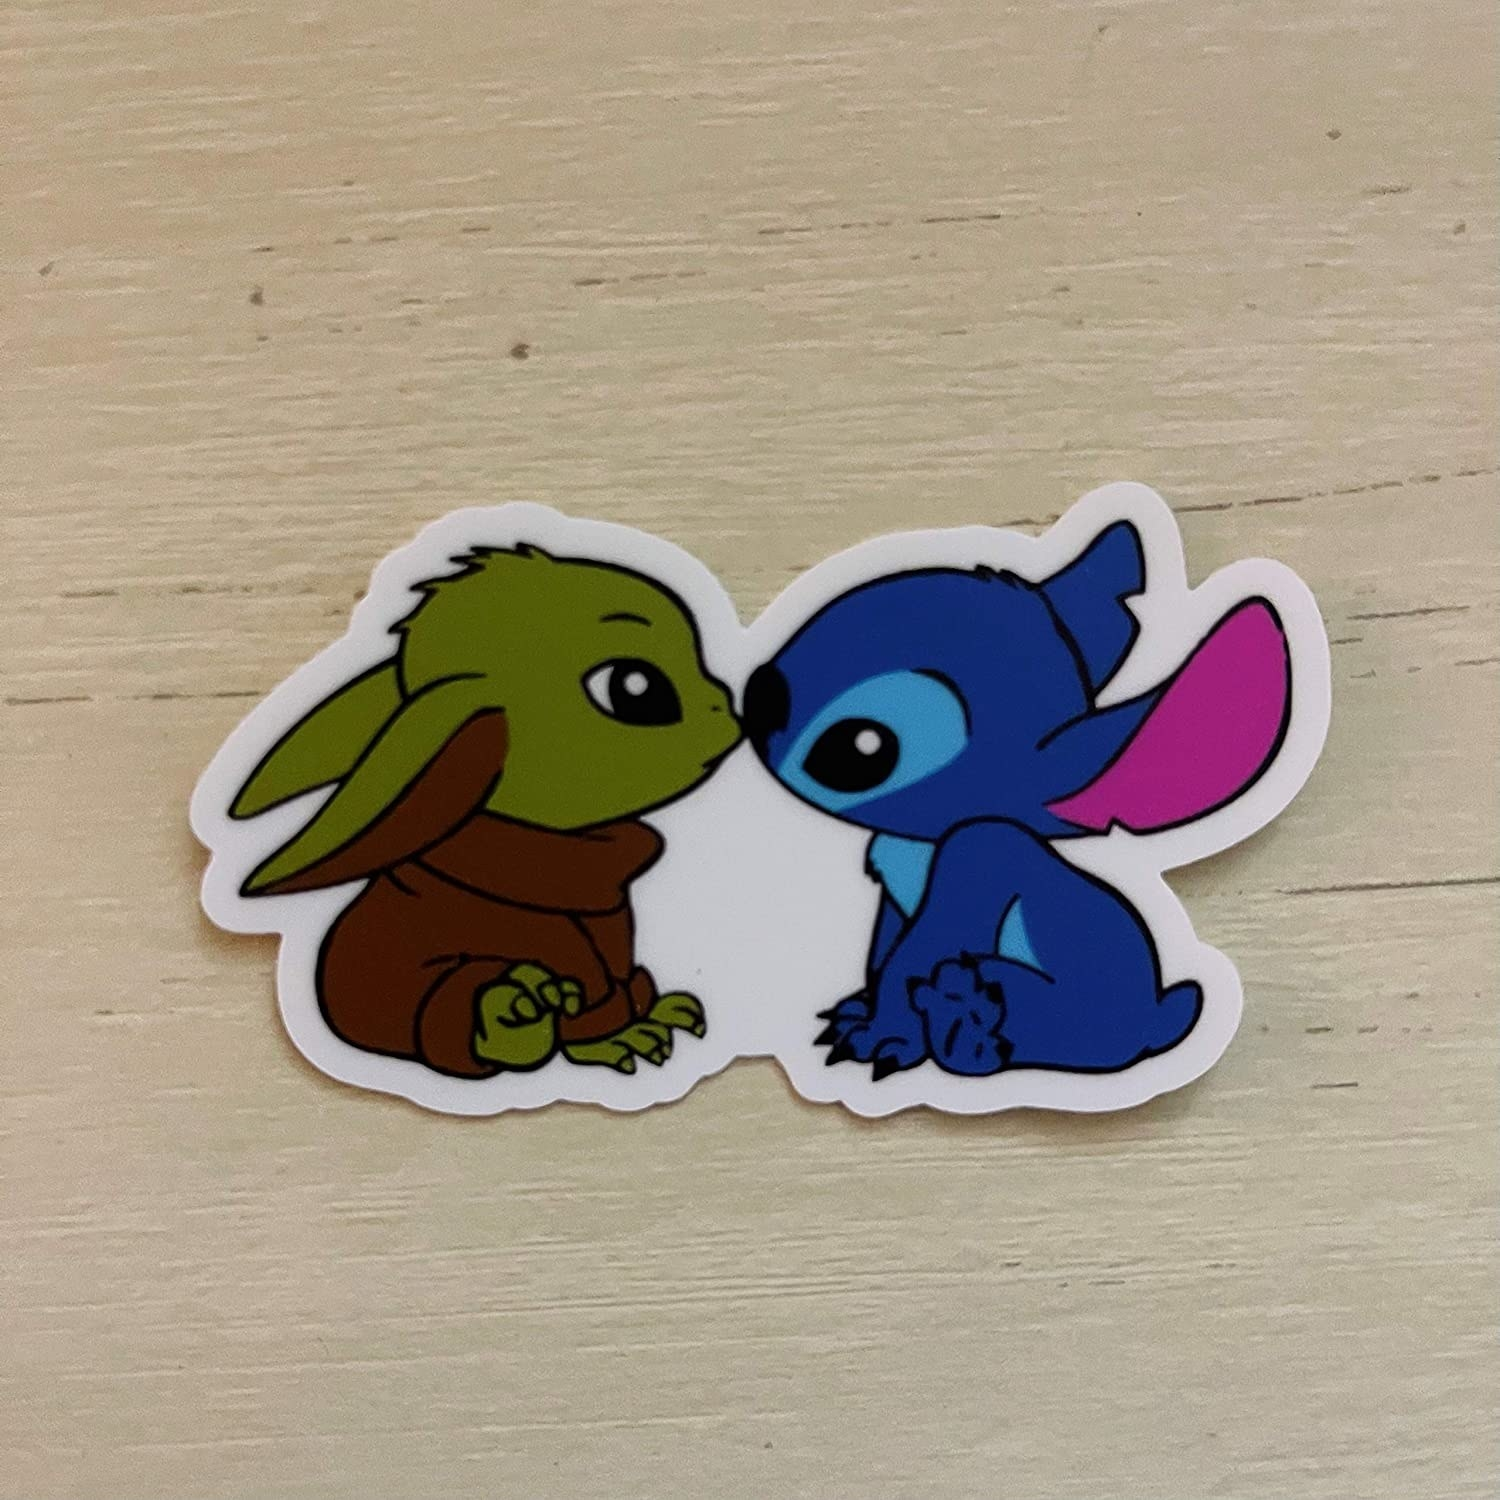 a sticker of baby yoda and stitch touching noses